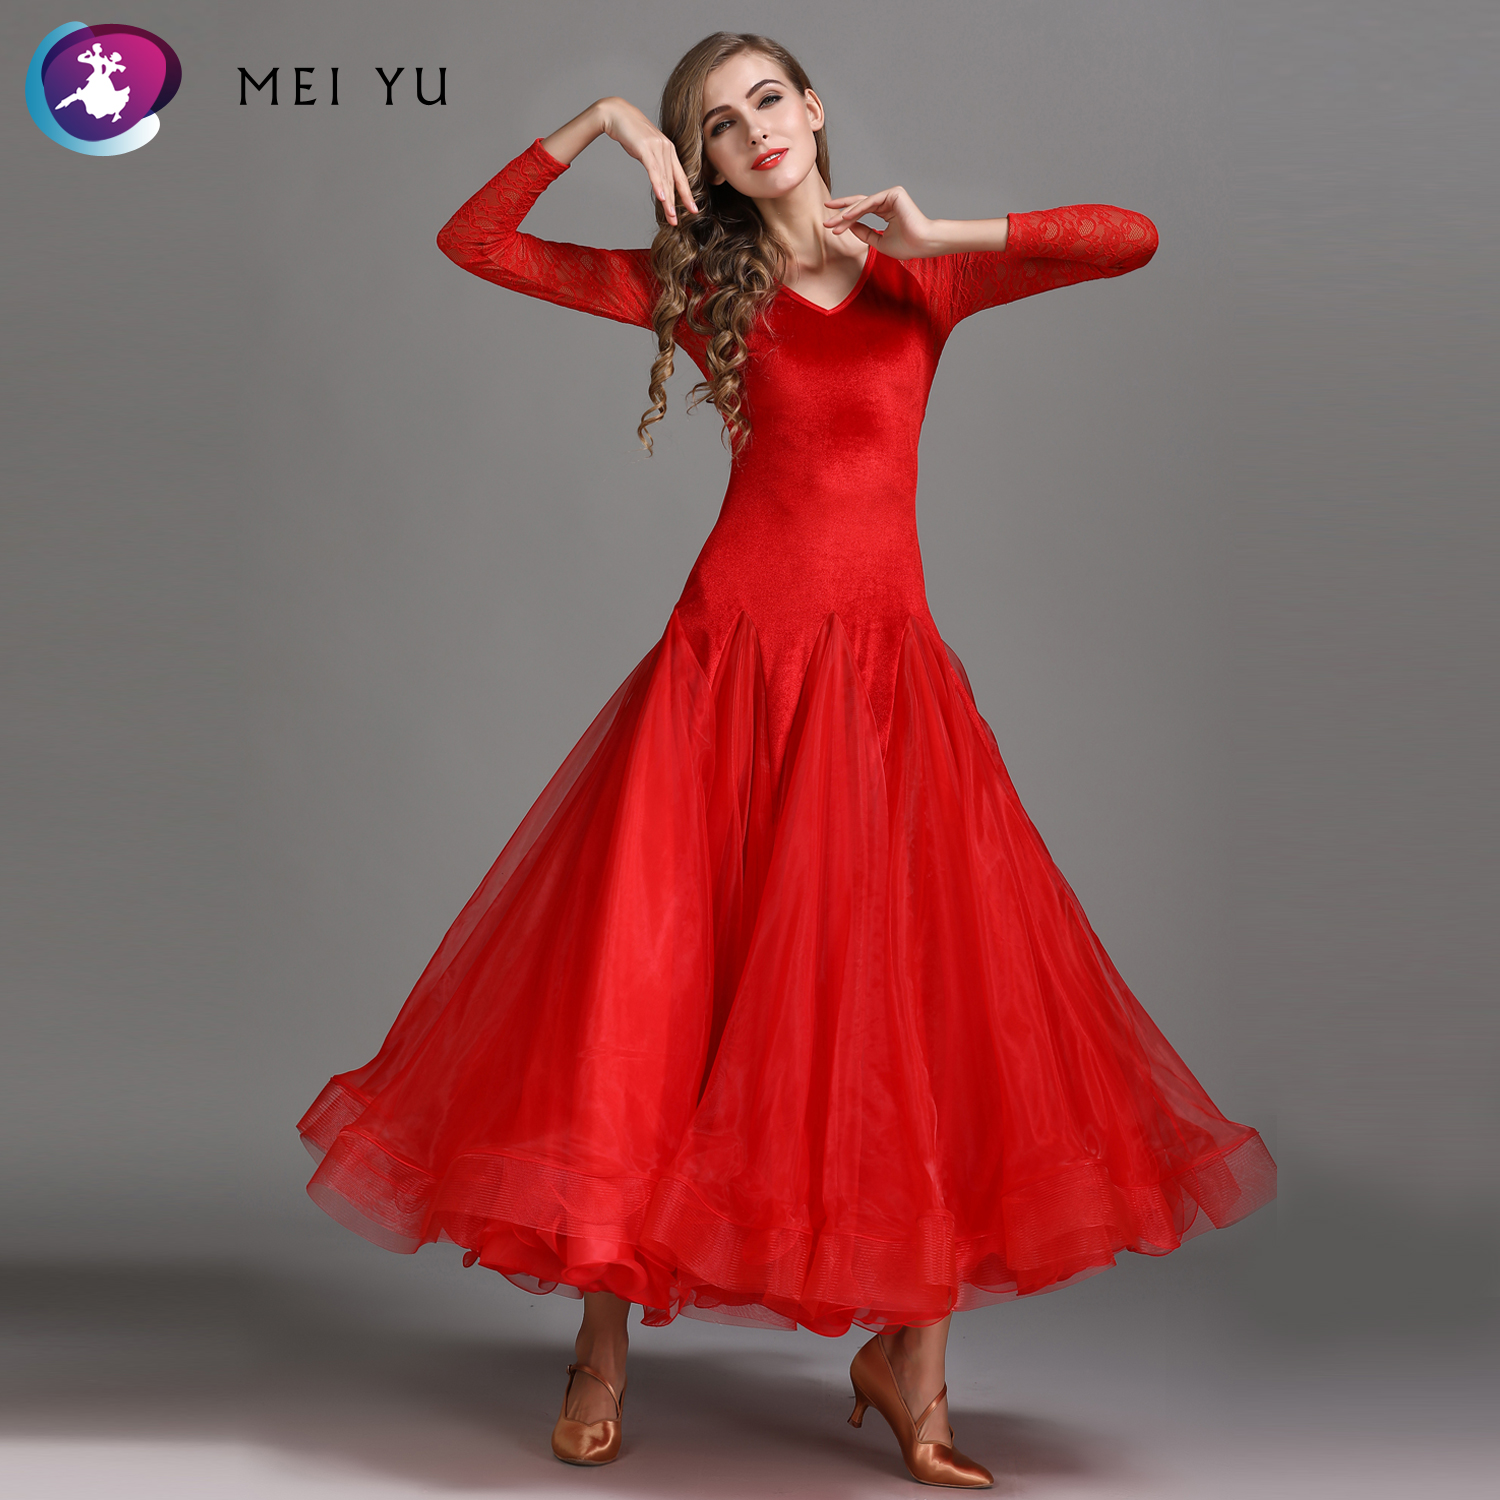 Stage & Dance Wear Diplomatic Mei Yu My786 Modern Dance Costume Women Lady Adult Waltzing Tango Velvet Dancing Dress Ballroom Costume Evening Party Dress Ballroom